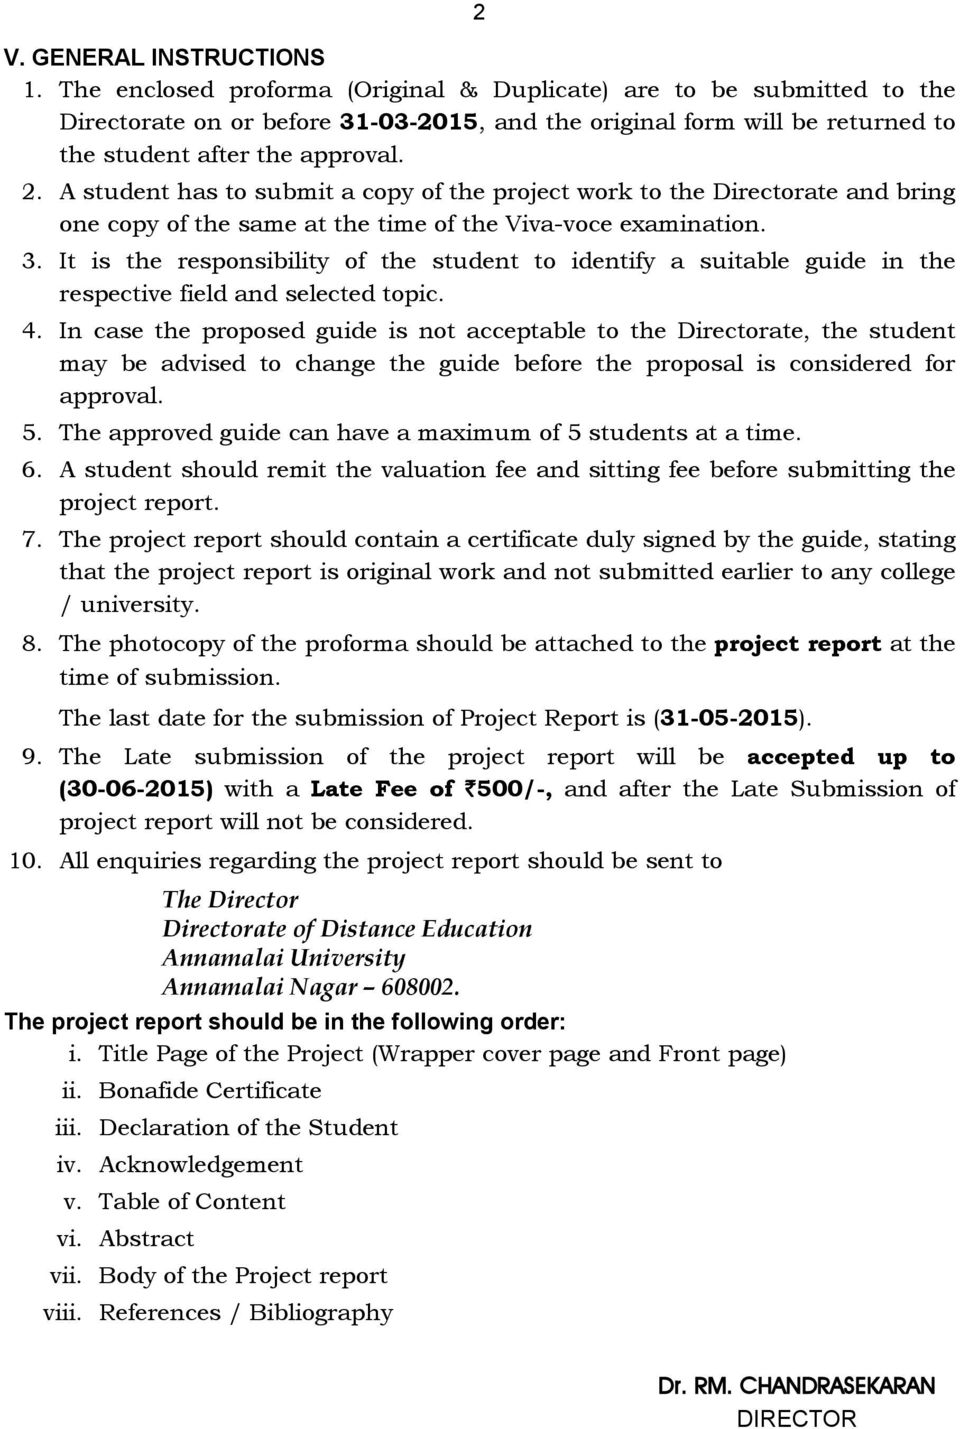 A student has to submit a copy of the project work to the Directorate and bring one copy of the same at the time of the Viva-voce examination. 3.